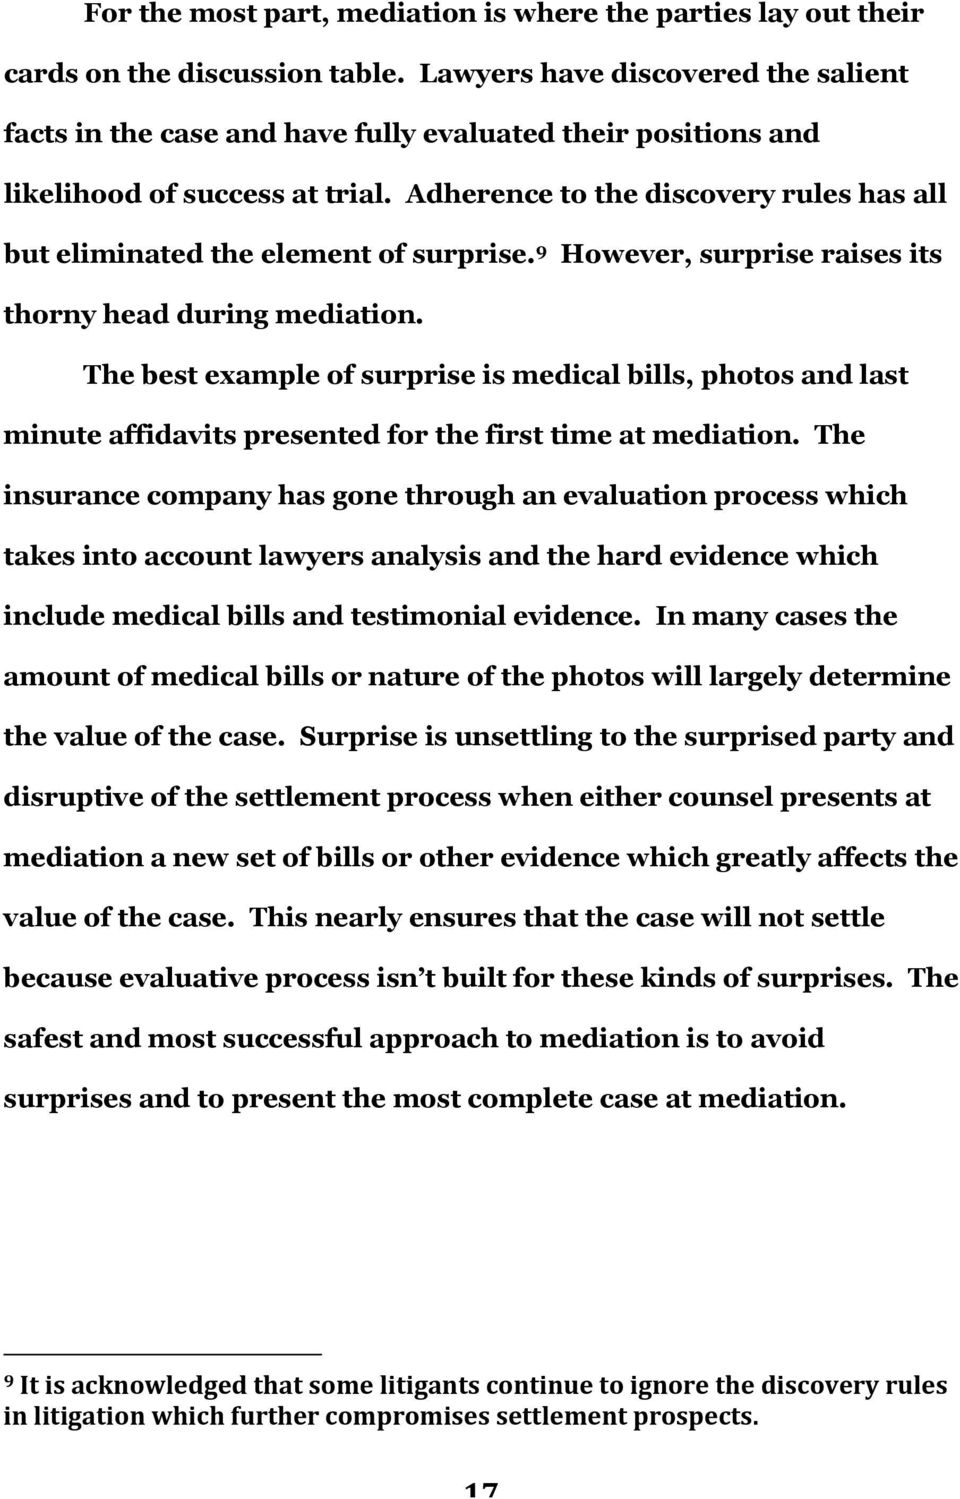 Adherence to the discovery rules has all but eliminated the element of surprise. 9 However, surprise raises its thorny head during mediation.